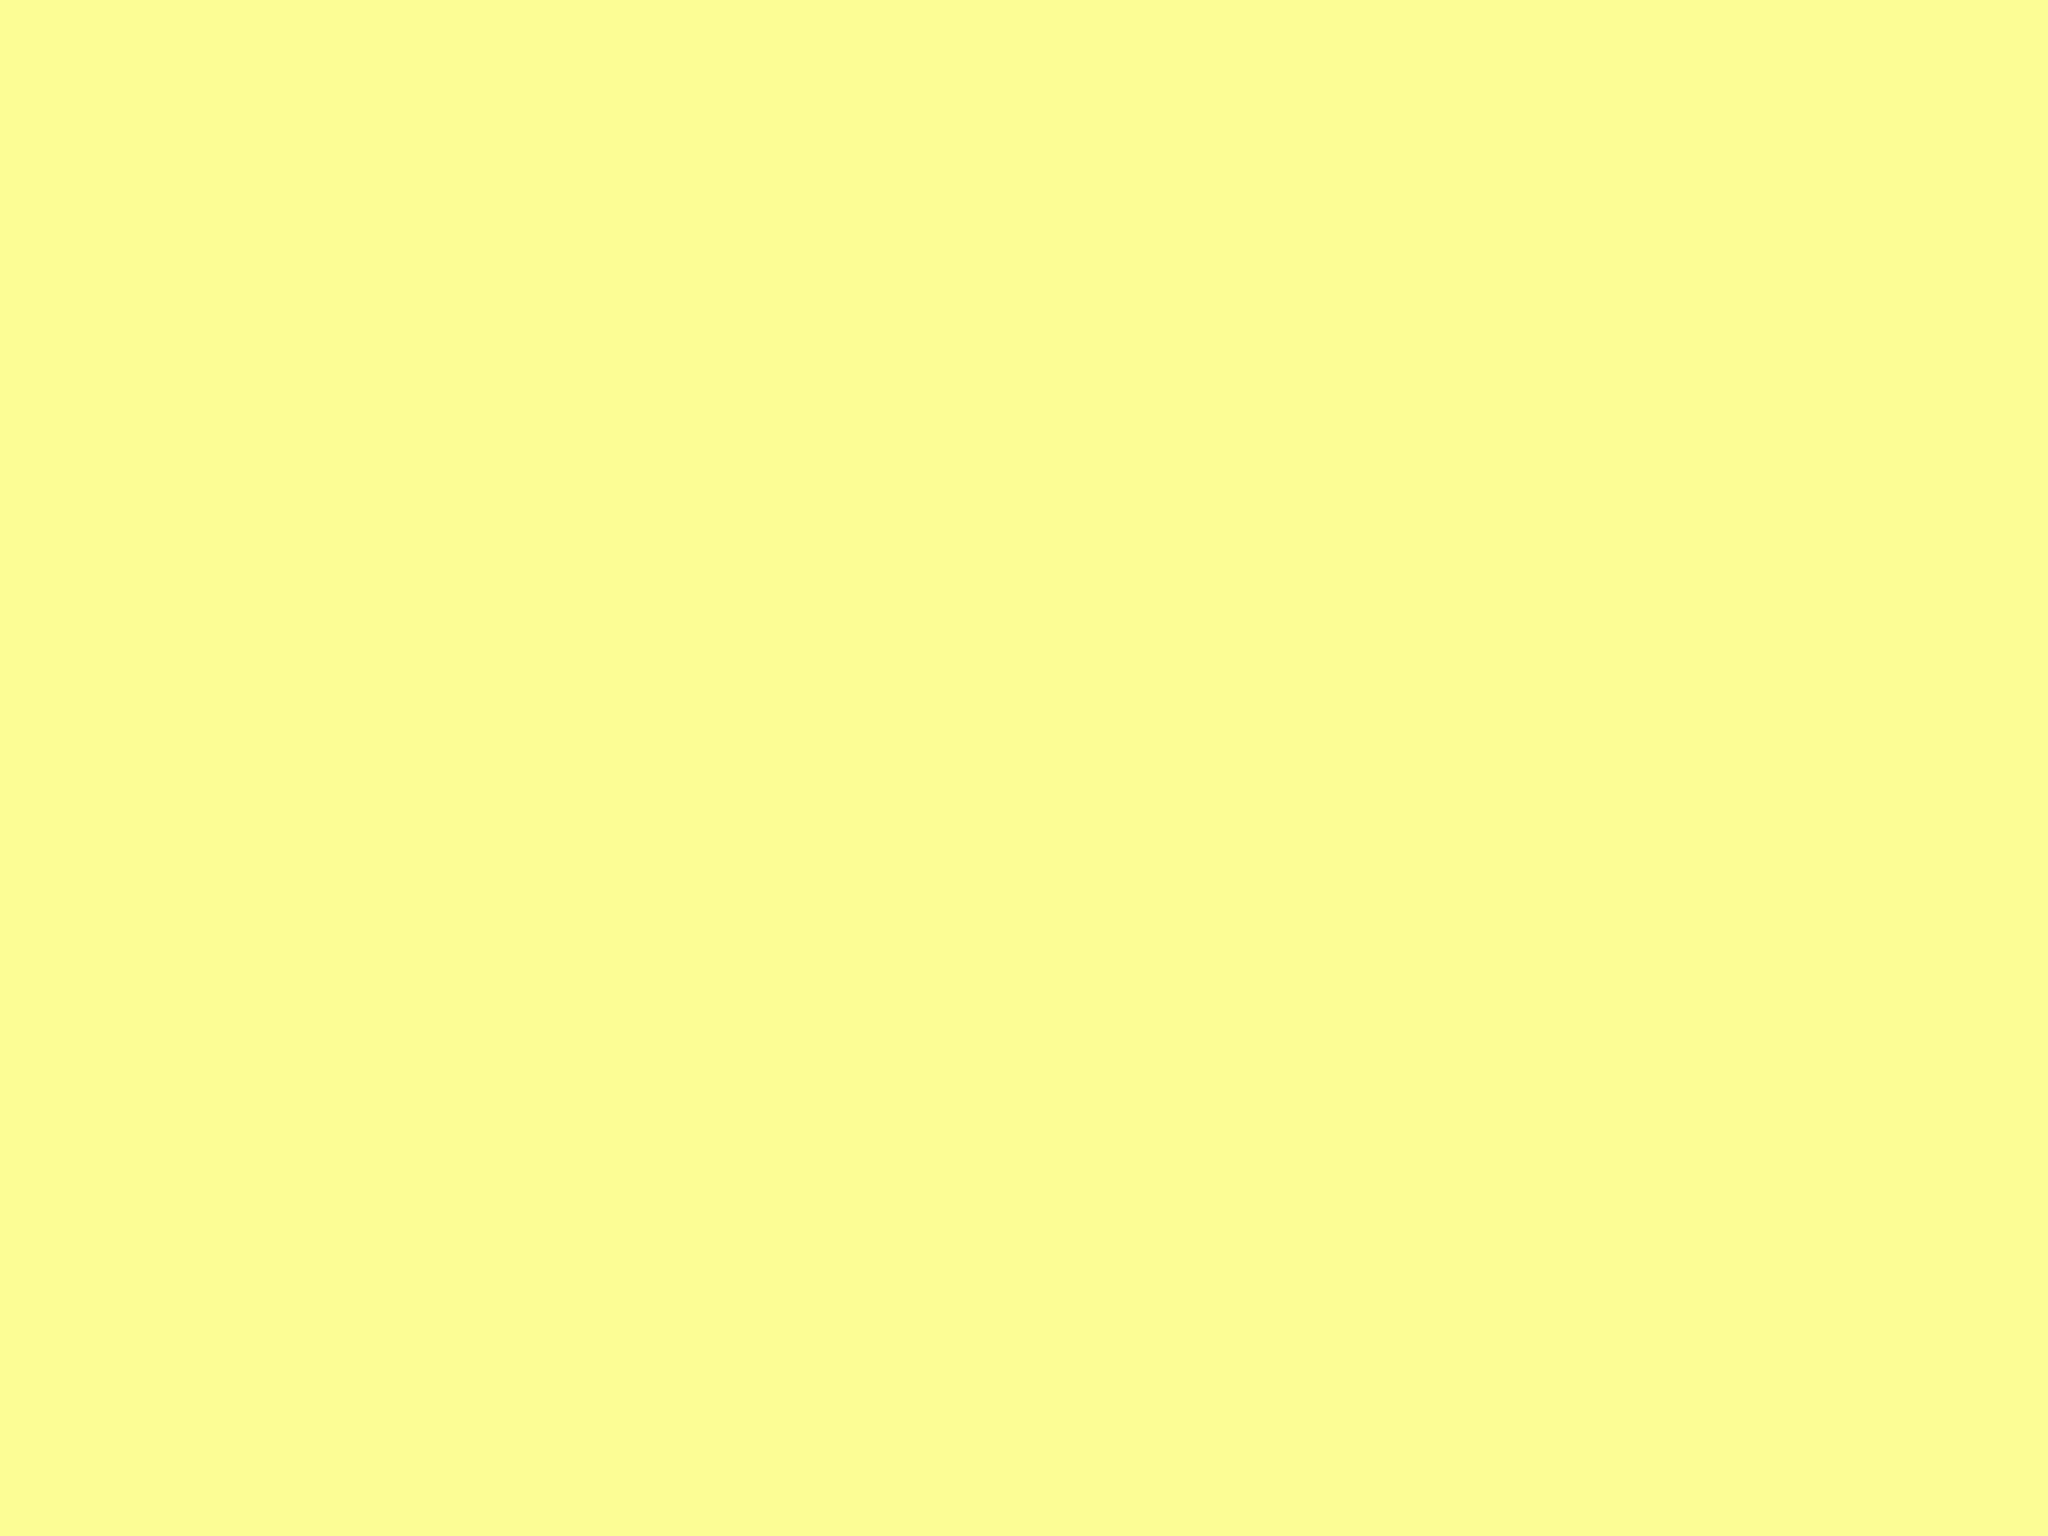 2048x1536 Pastel Yellow Solid Color Background